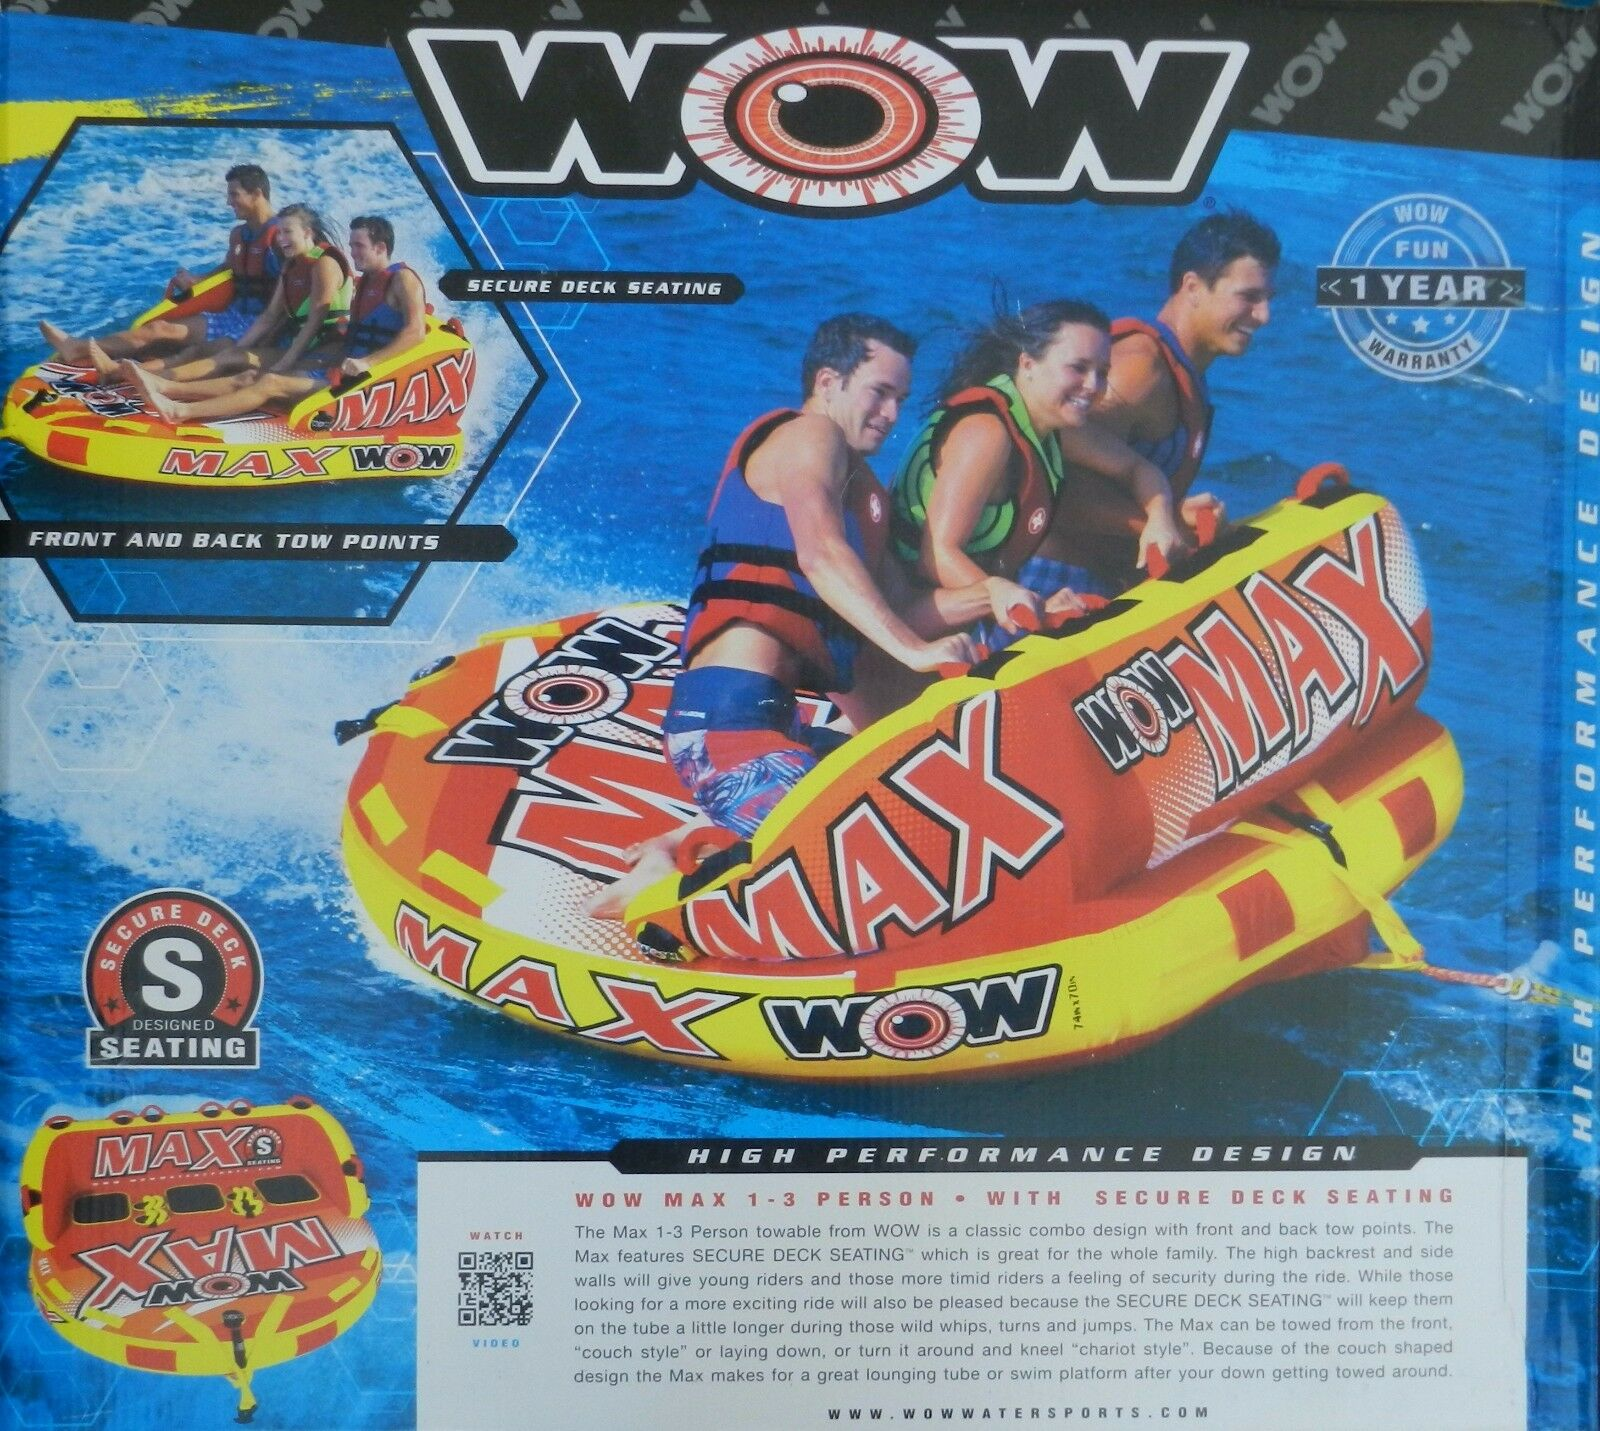 WOW Max 1 2 3 Person 2 Way Towable Water Raft Float Tow Tube